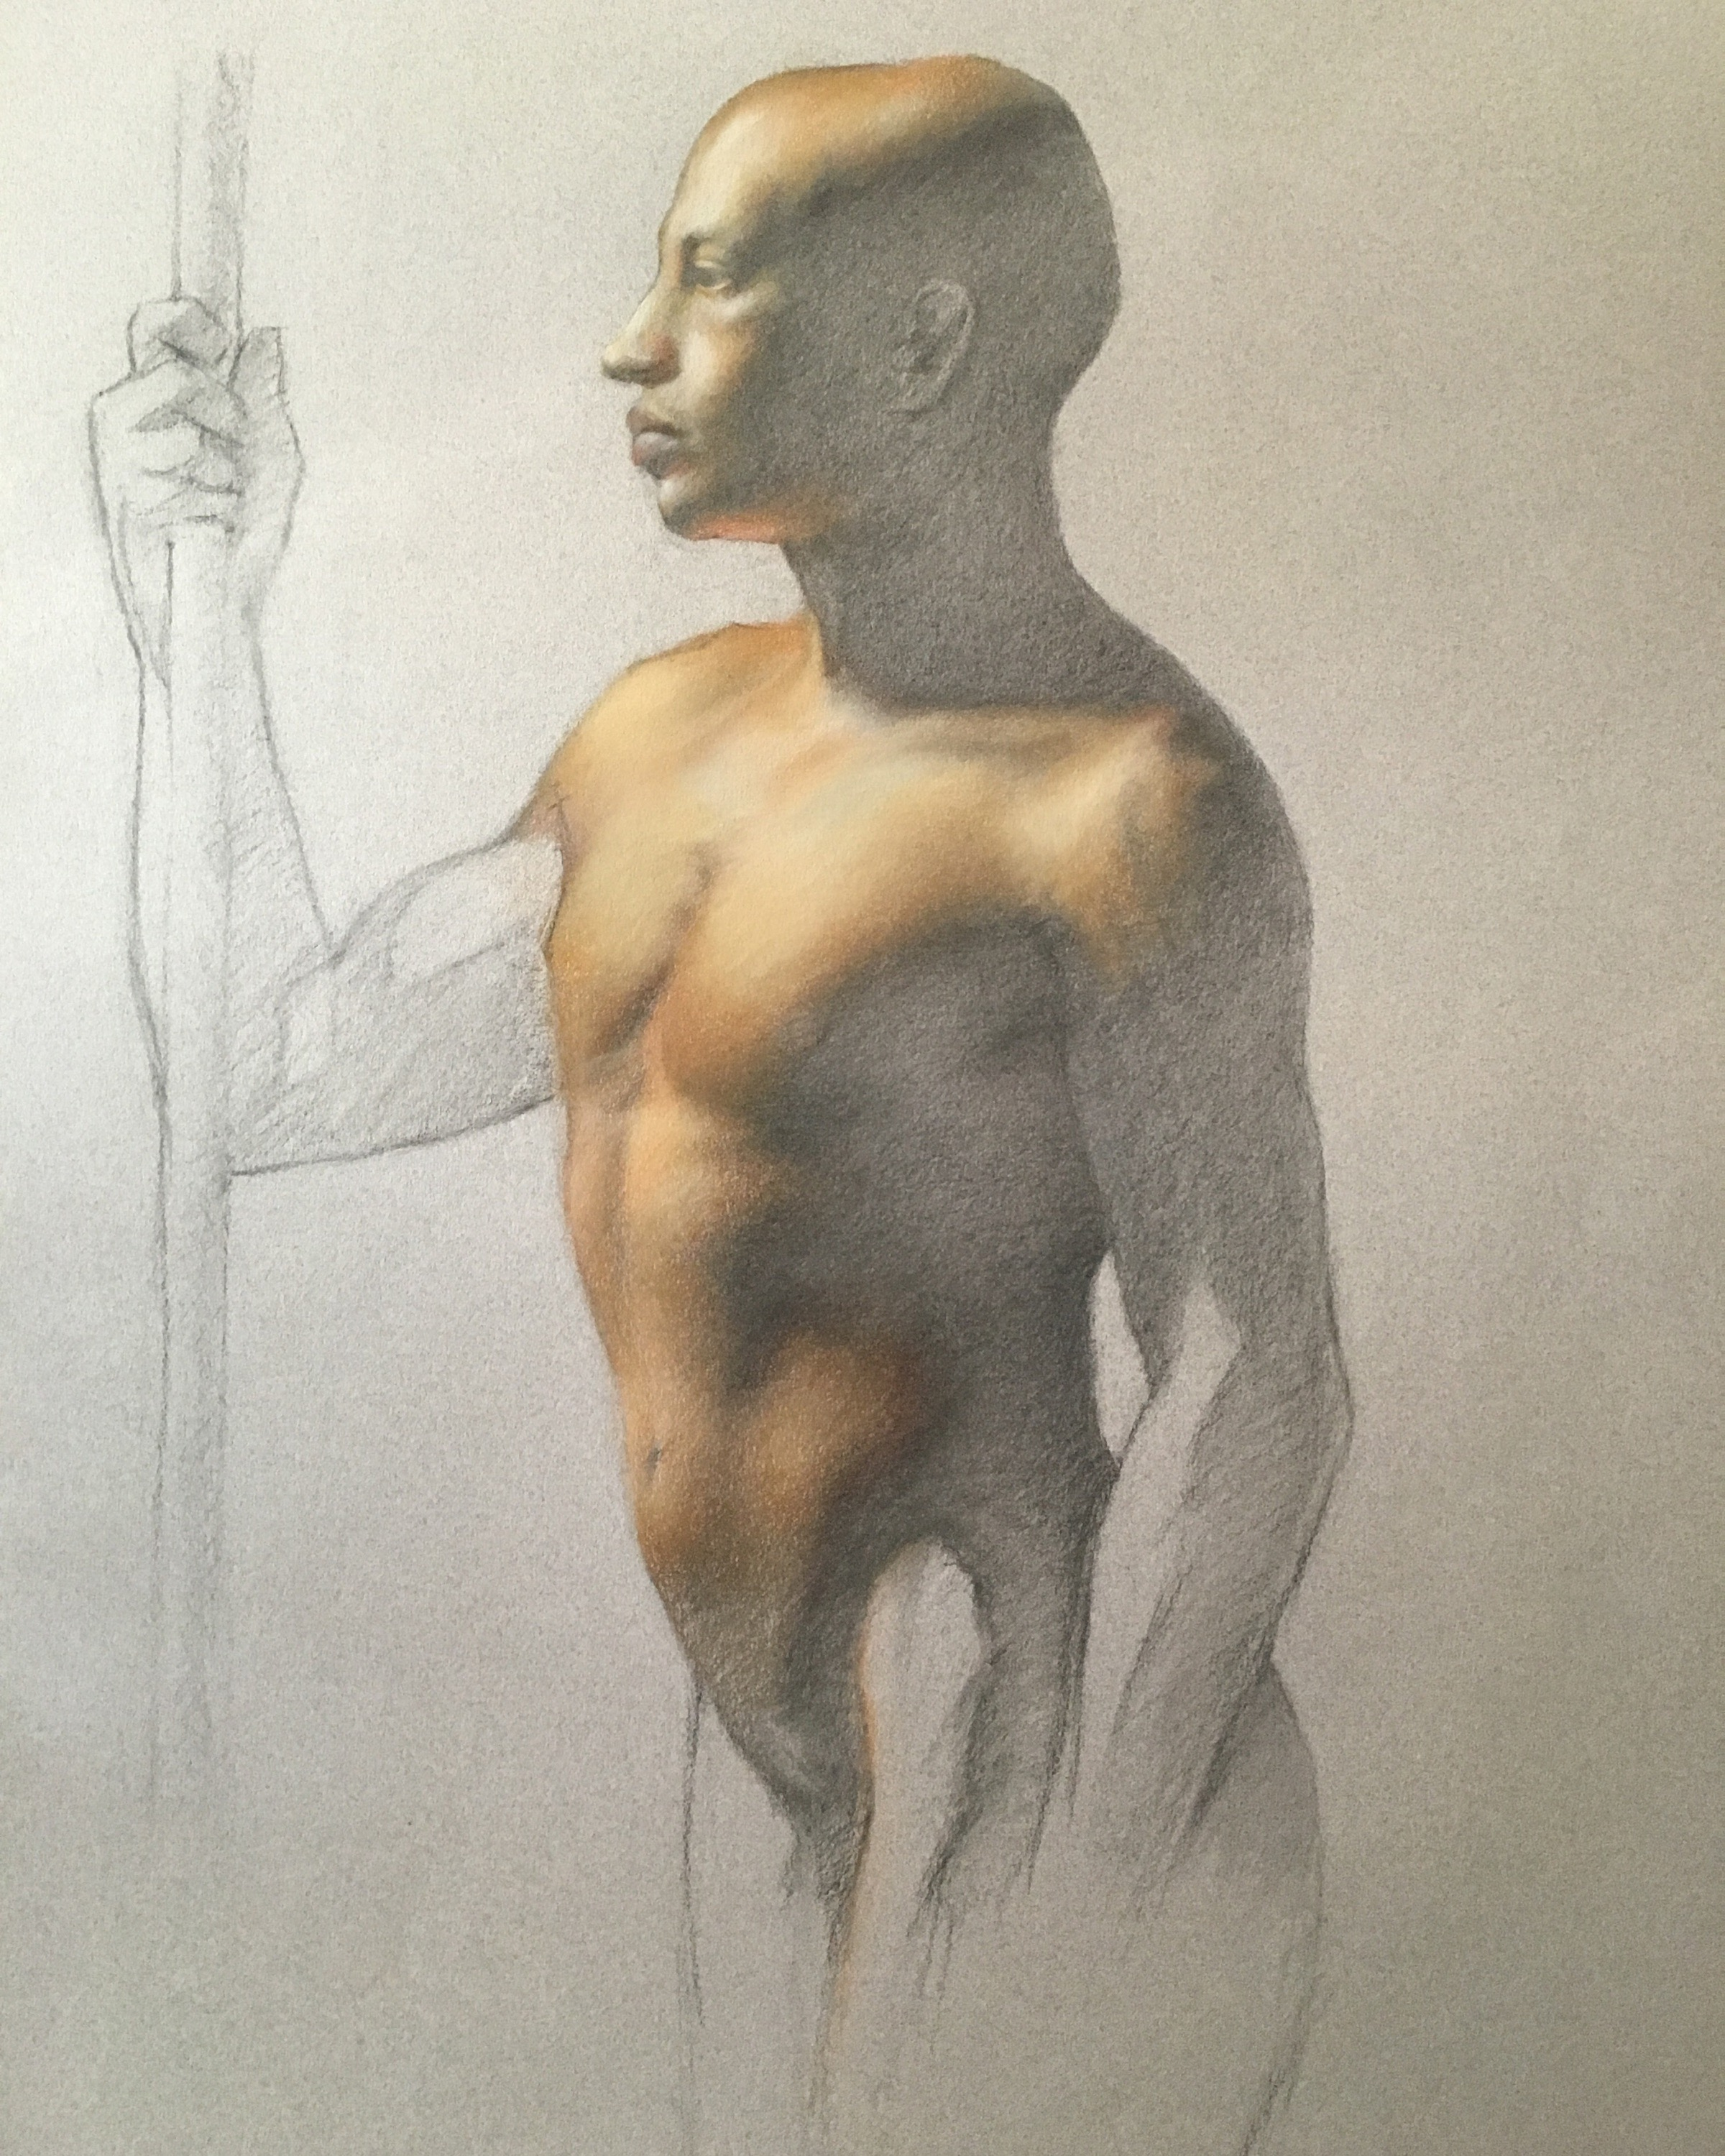 Seneca , 2016, charcoal and pastel pencil on toned paper, 19 x 25 in. Private collection.